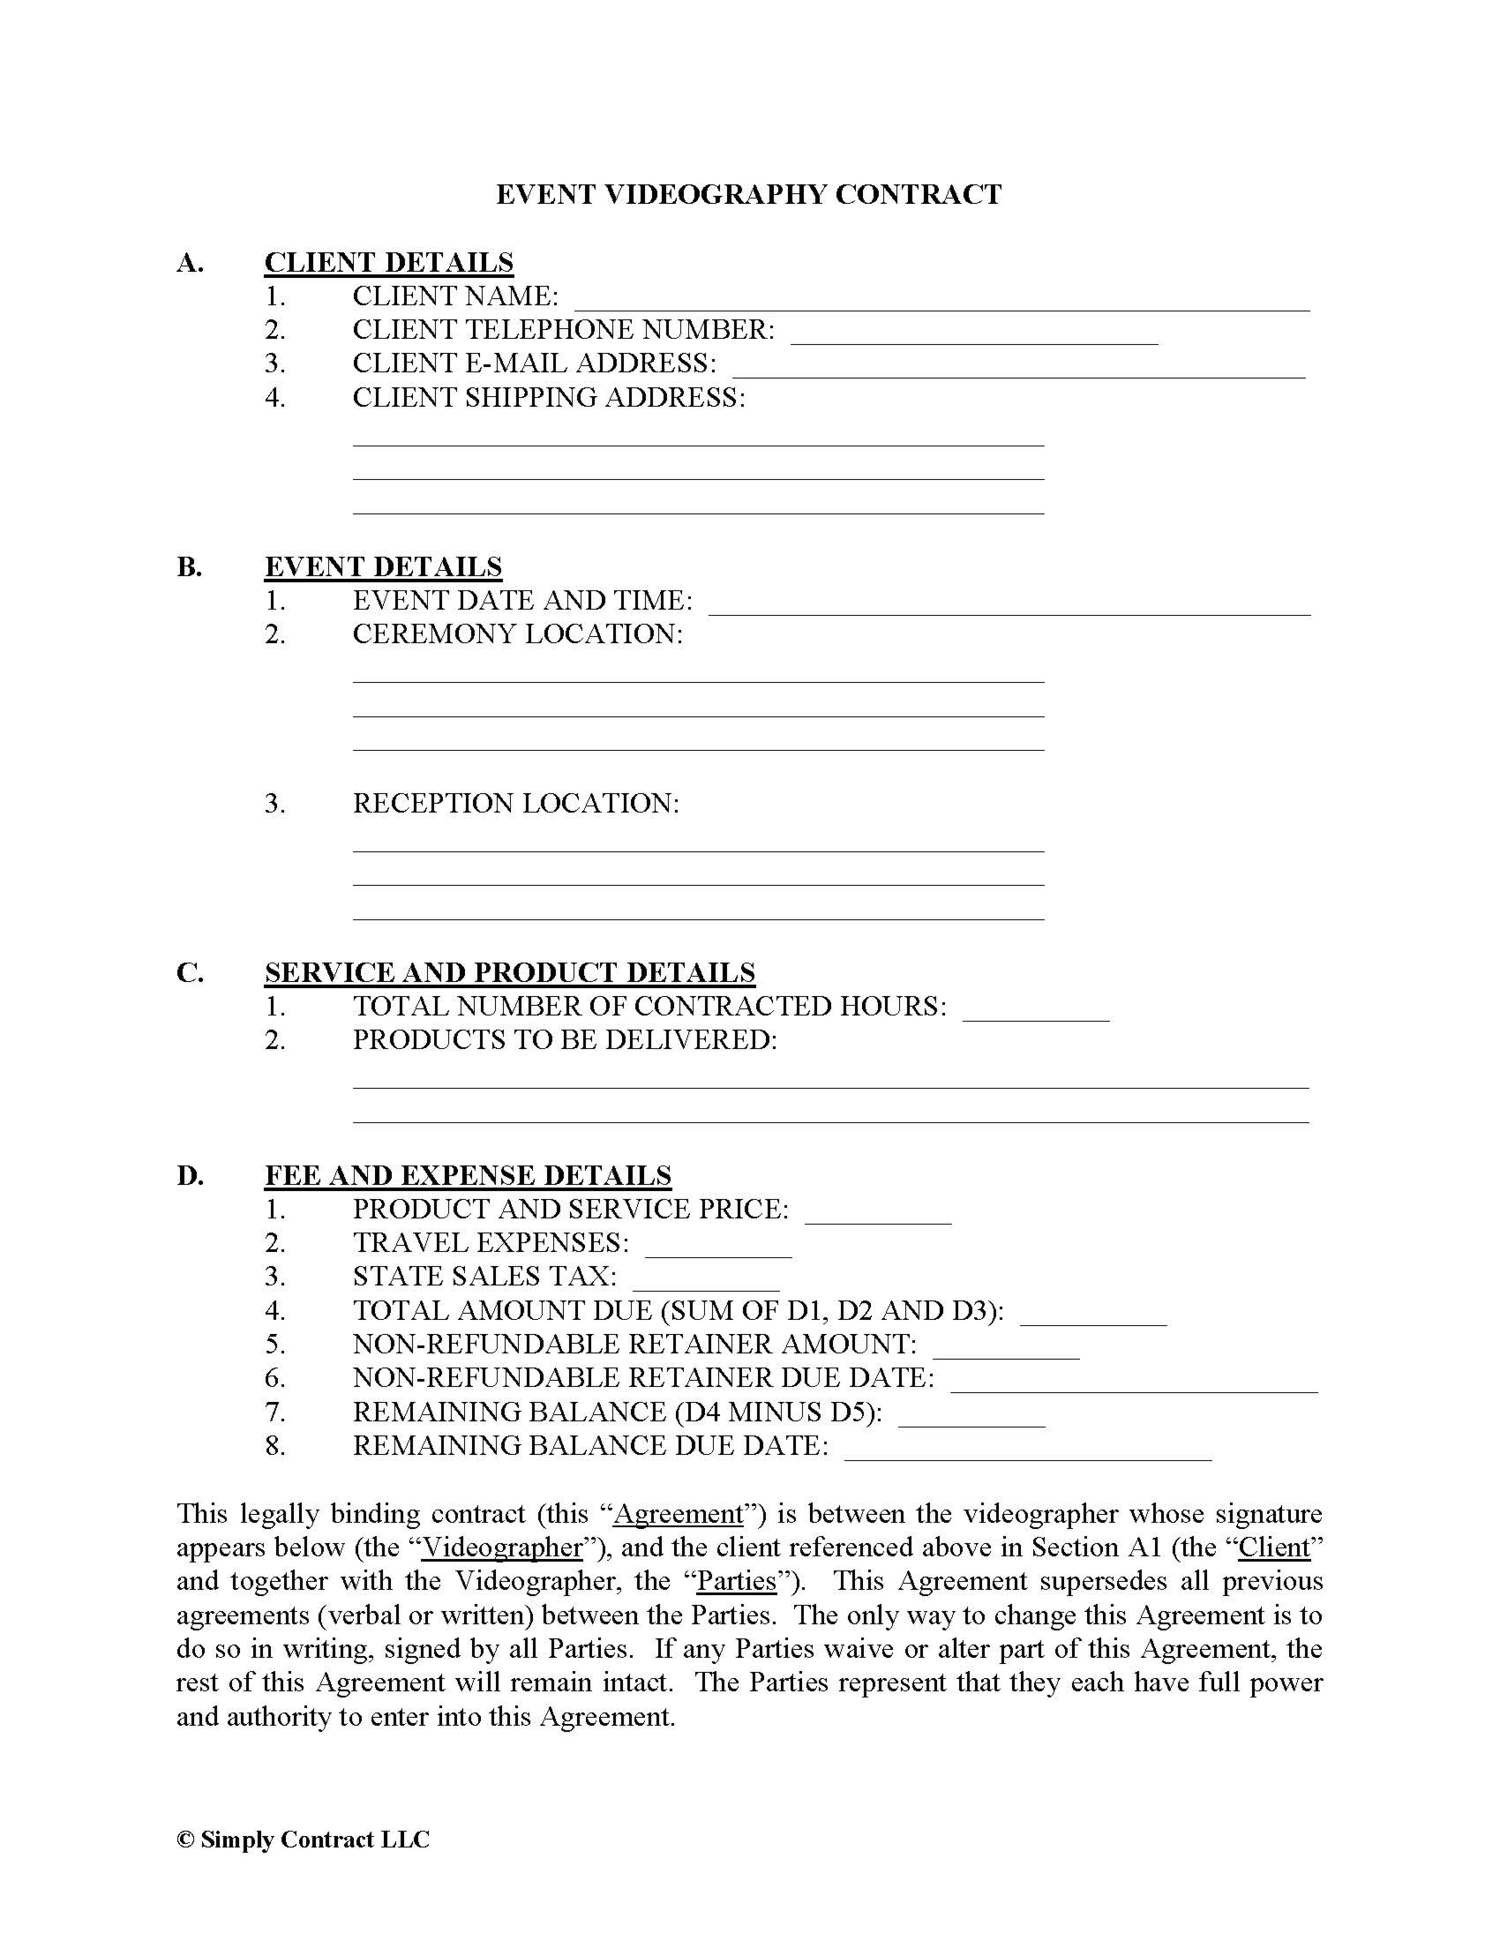 Wedding Videographer Contract Template Video Contract Template